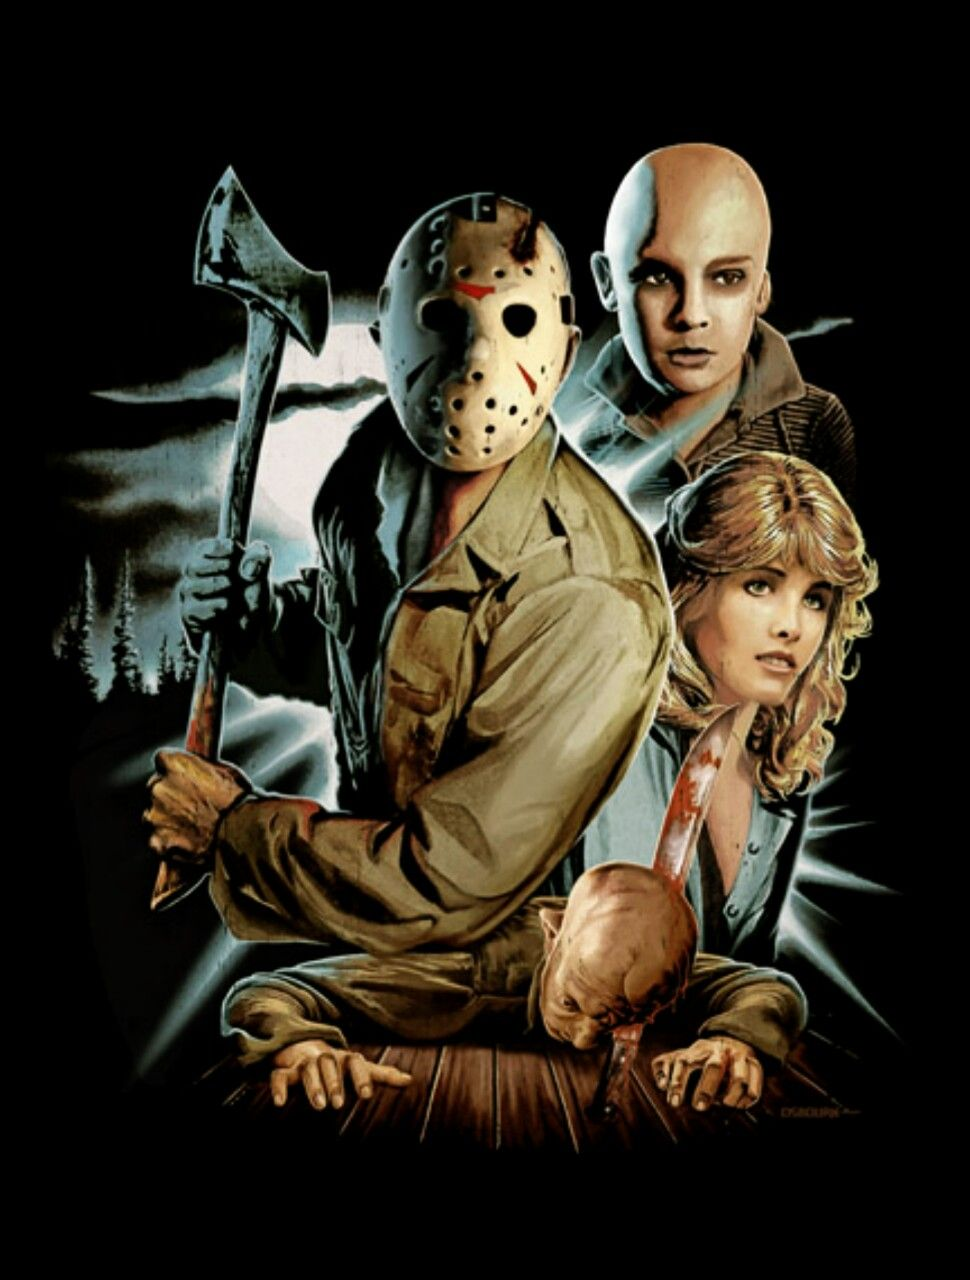 Justin Osbourn Halloween Art 2020 Friday The 13th Part IV: The Final Chapter by Justin Osbourn